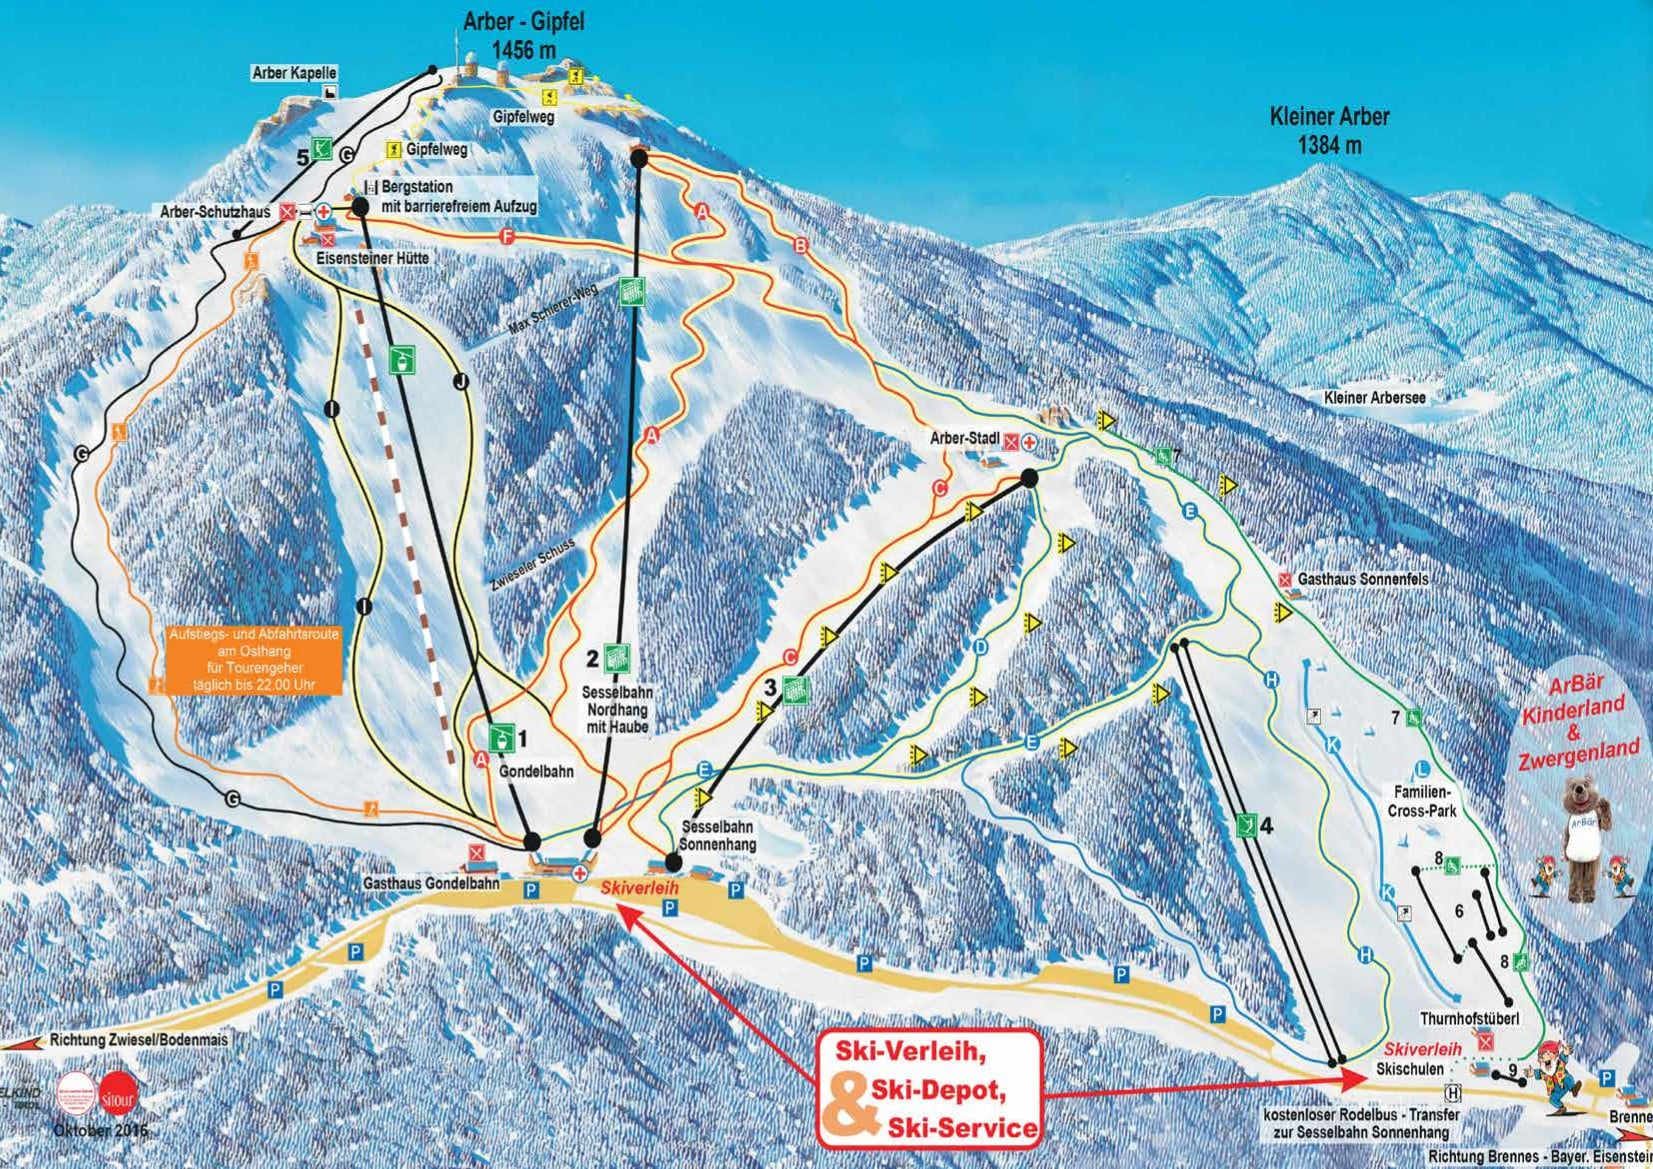 Arber Piste / Trail Map